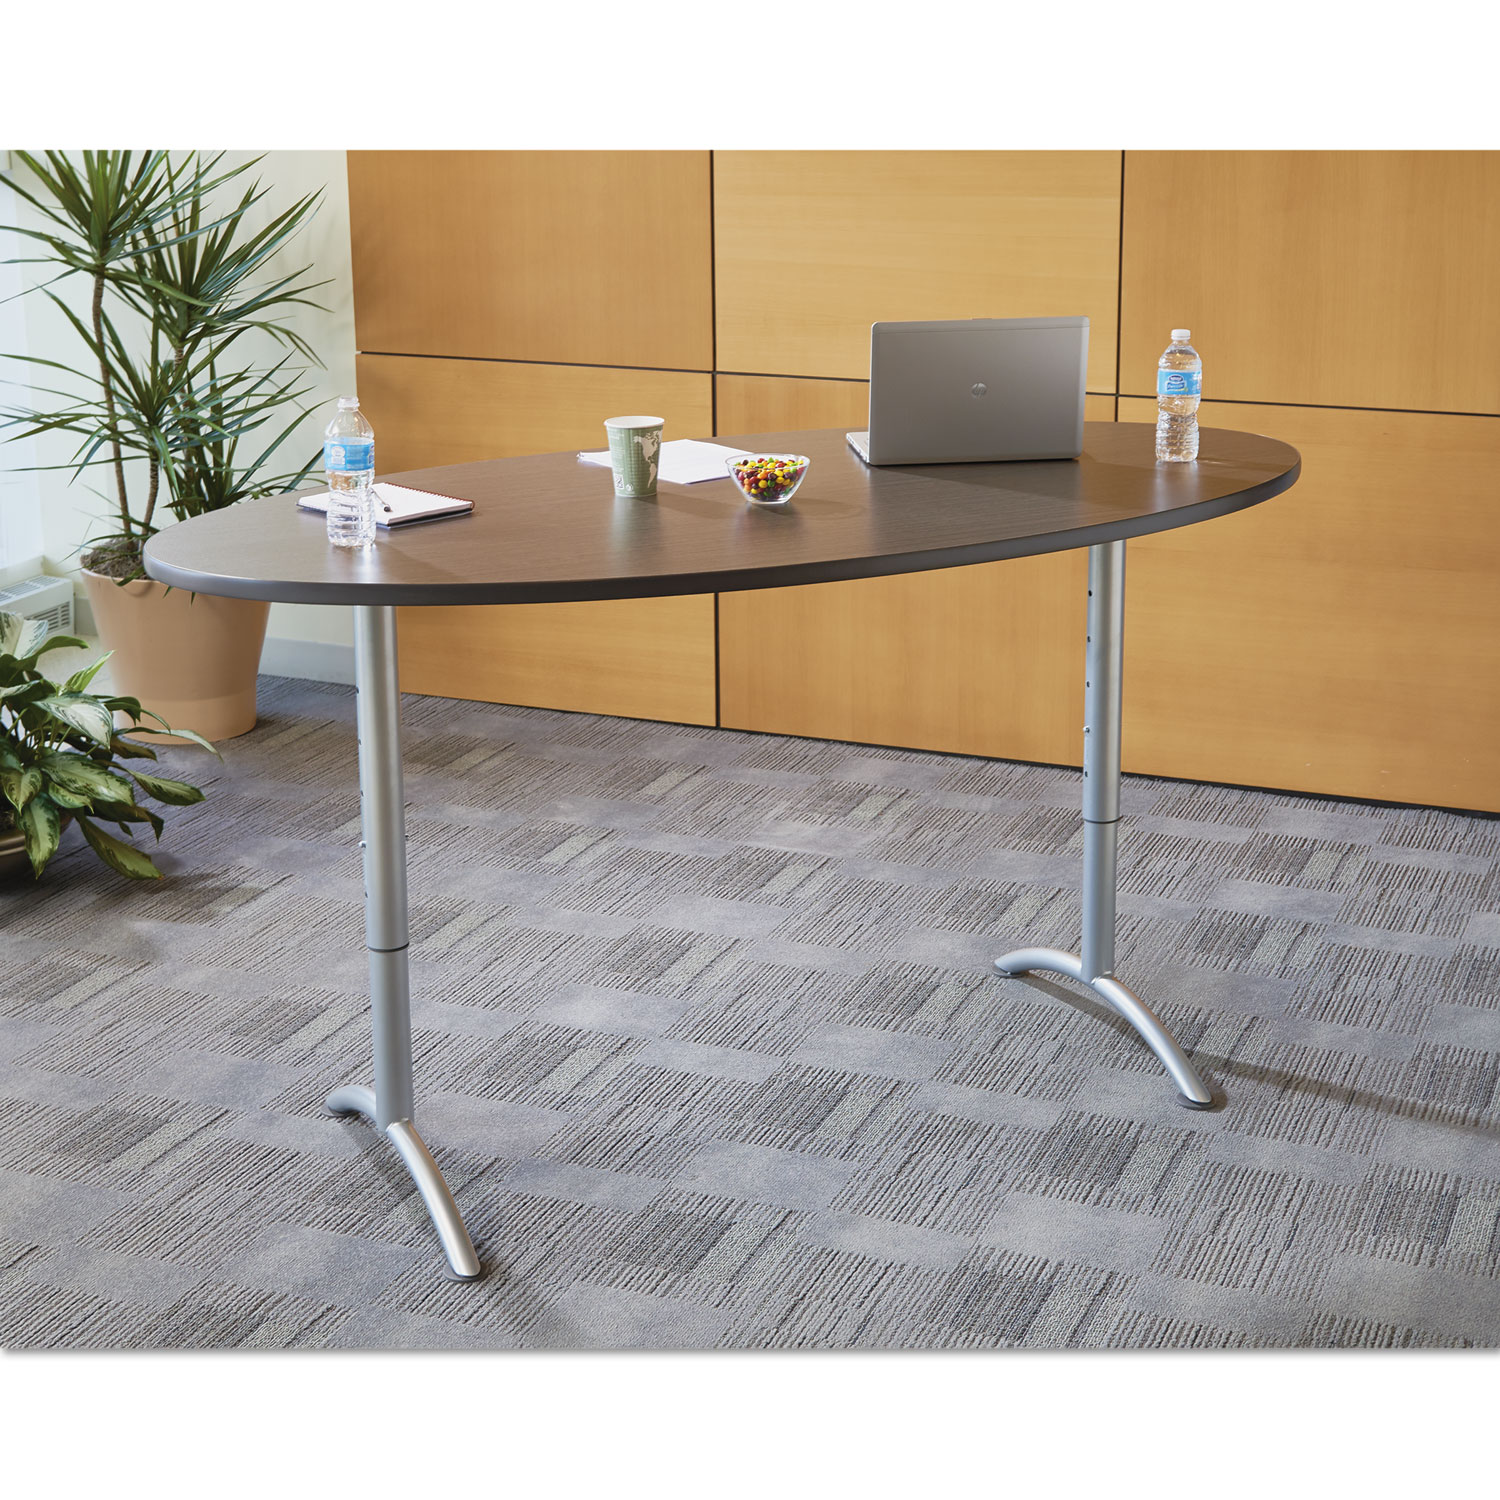 Ice69627 Iceberg Arc Sit To Stand Tables Zuma